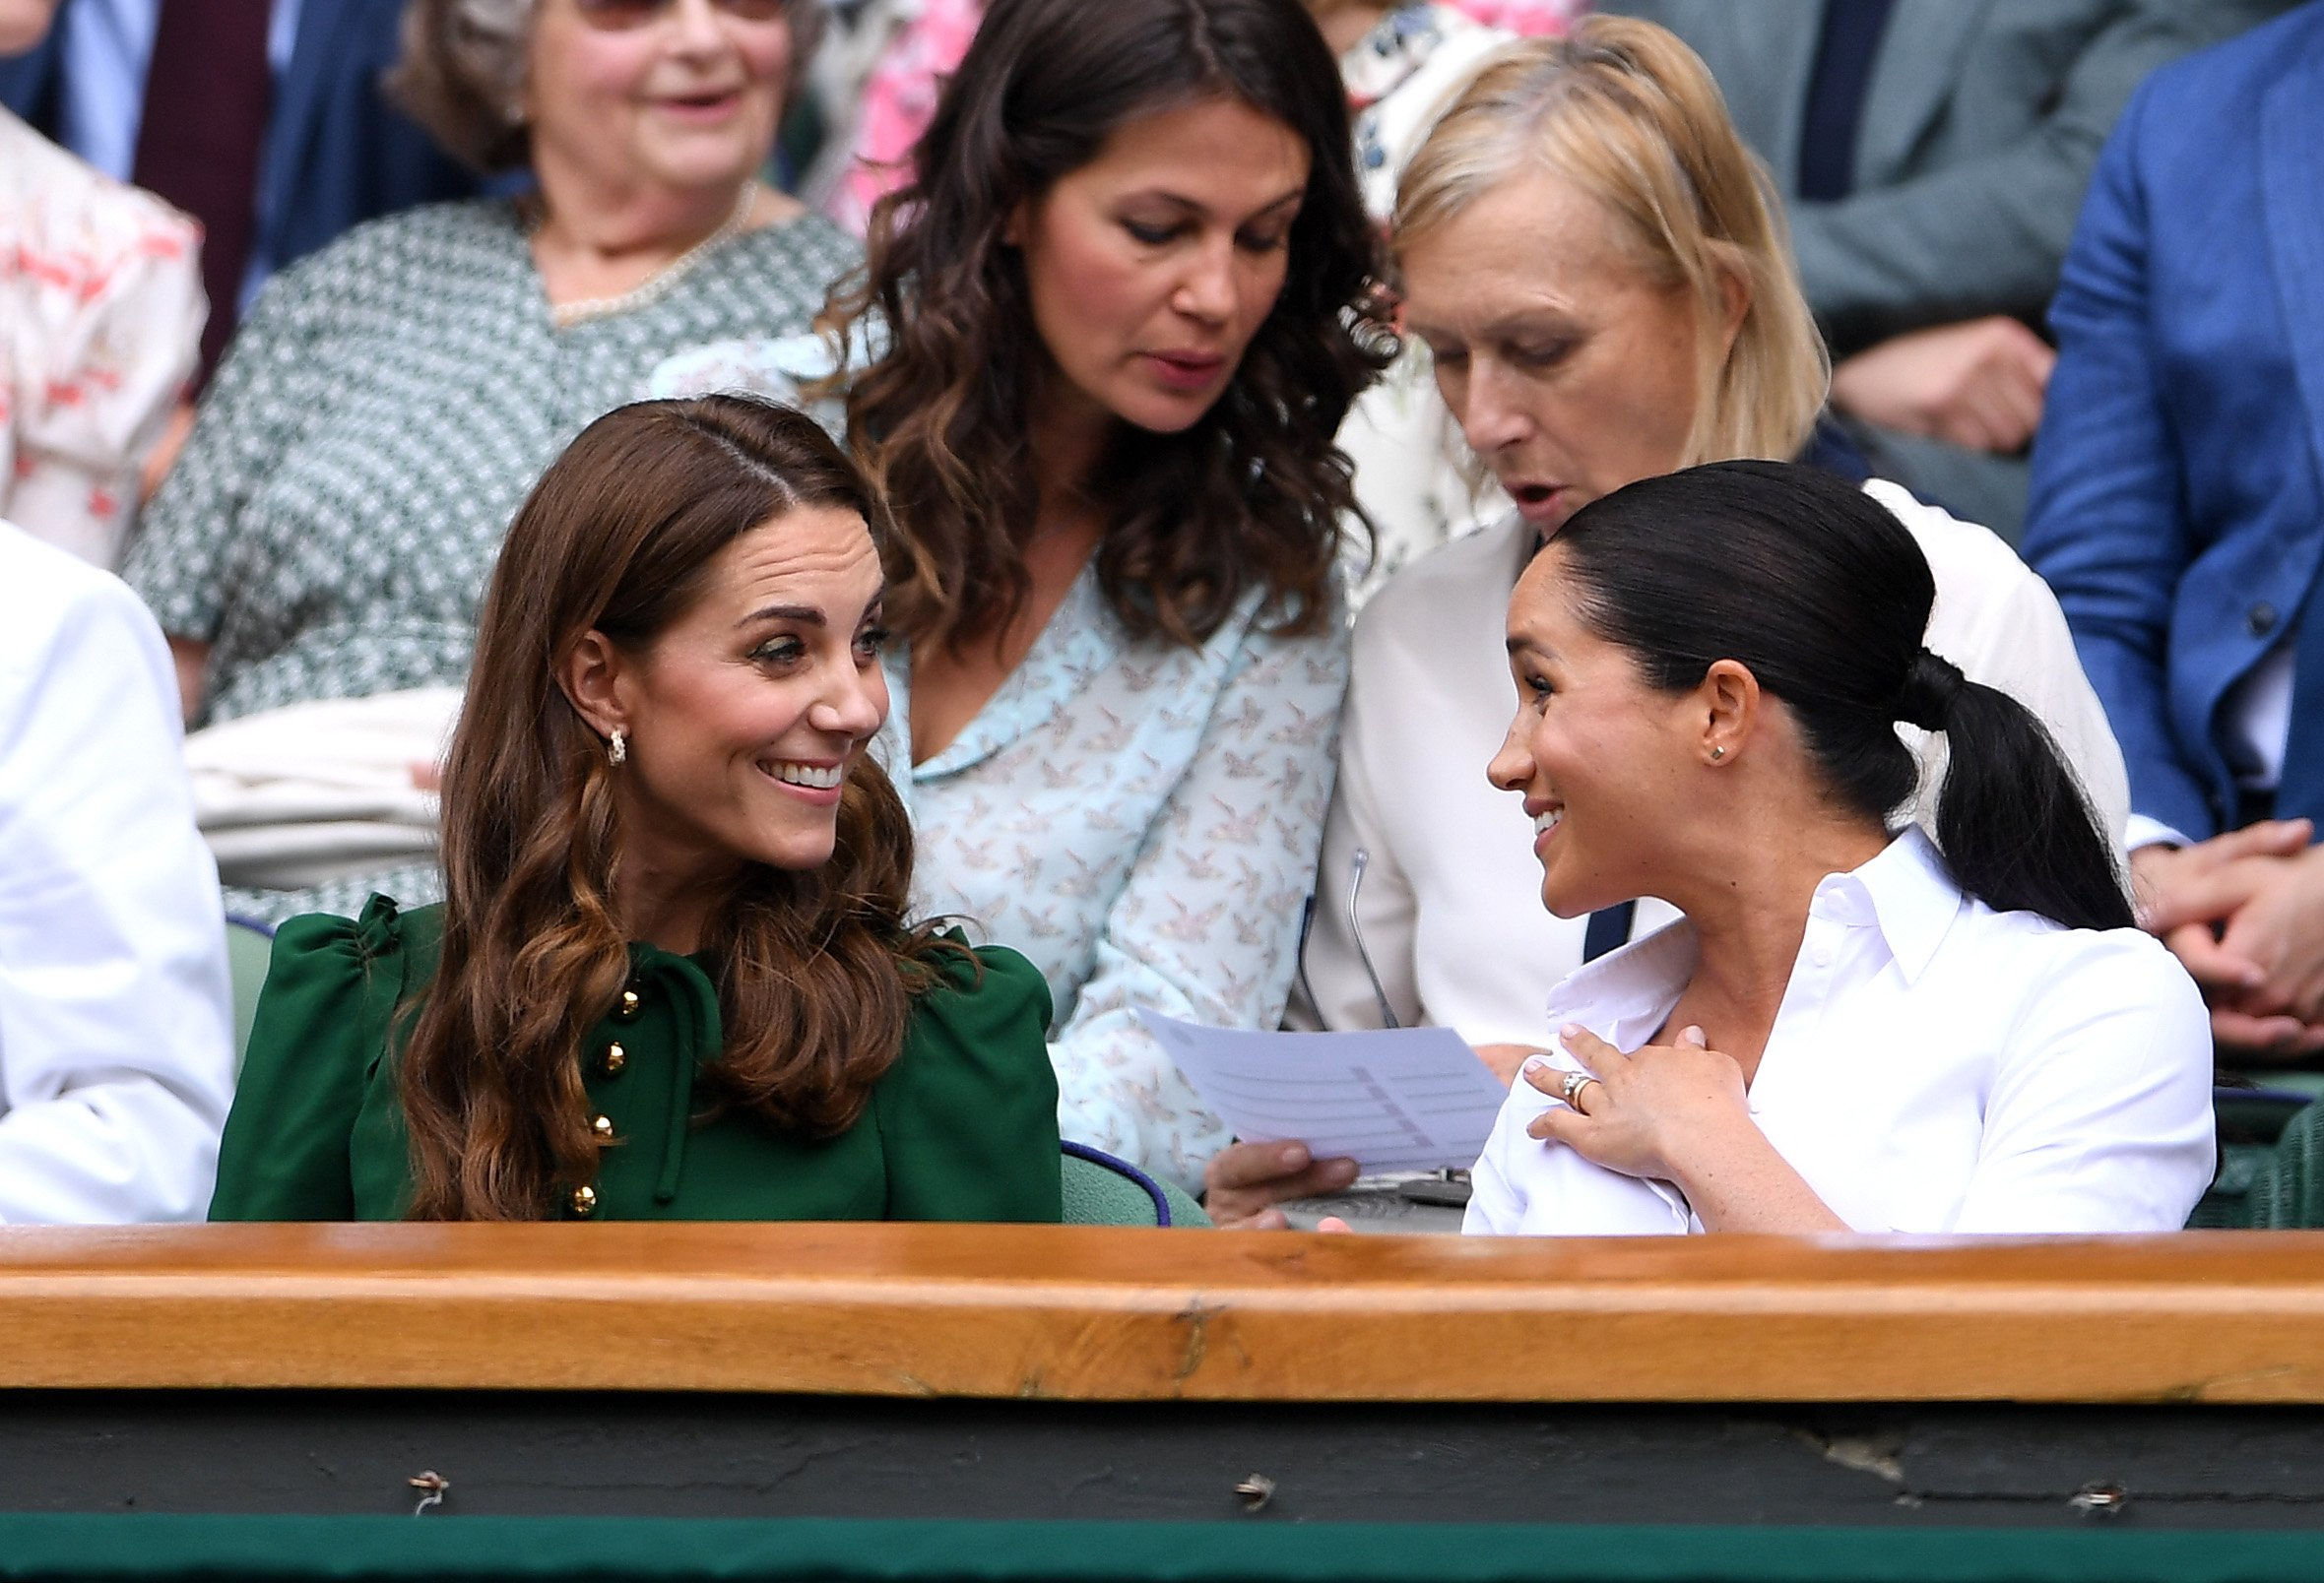 Kate Middleton and Meghan Markle at Wimbledon's 2019 Ladies' Singles Finals | Photo: Getty Images